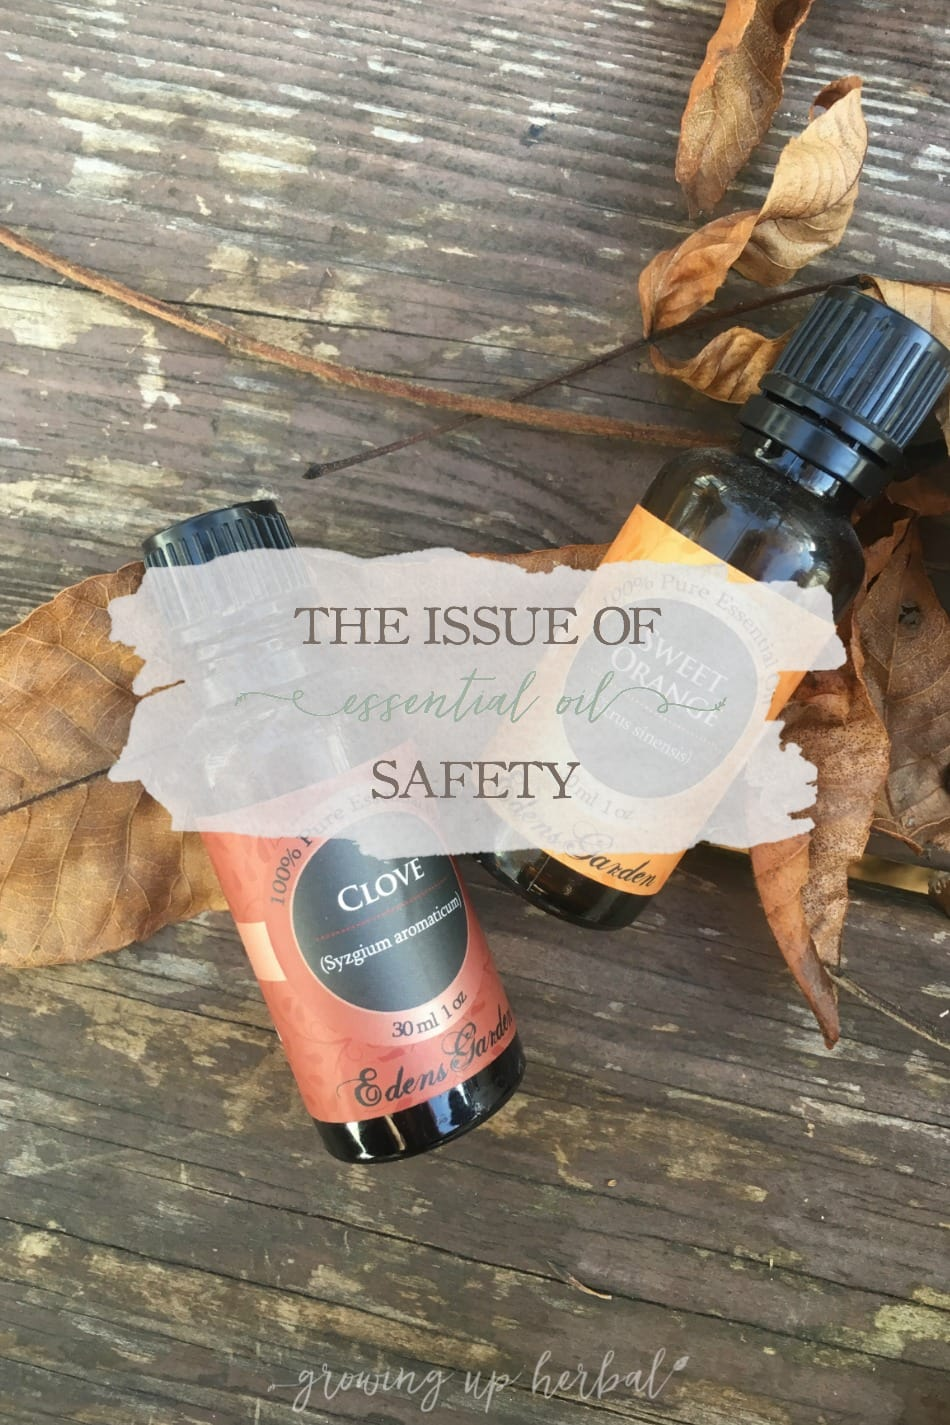 The Issue of Essential Oil Safety | GrowingUpHerbal.com | With all the confusing info on essential oils online these days, I've written about my experience with them as well as how I'm learning to use them safely.